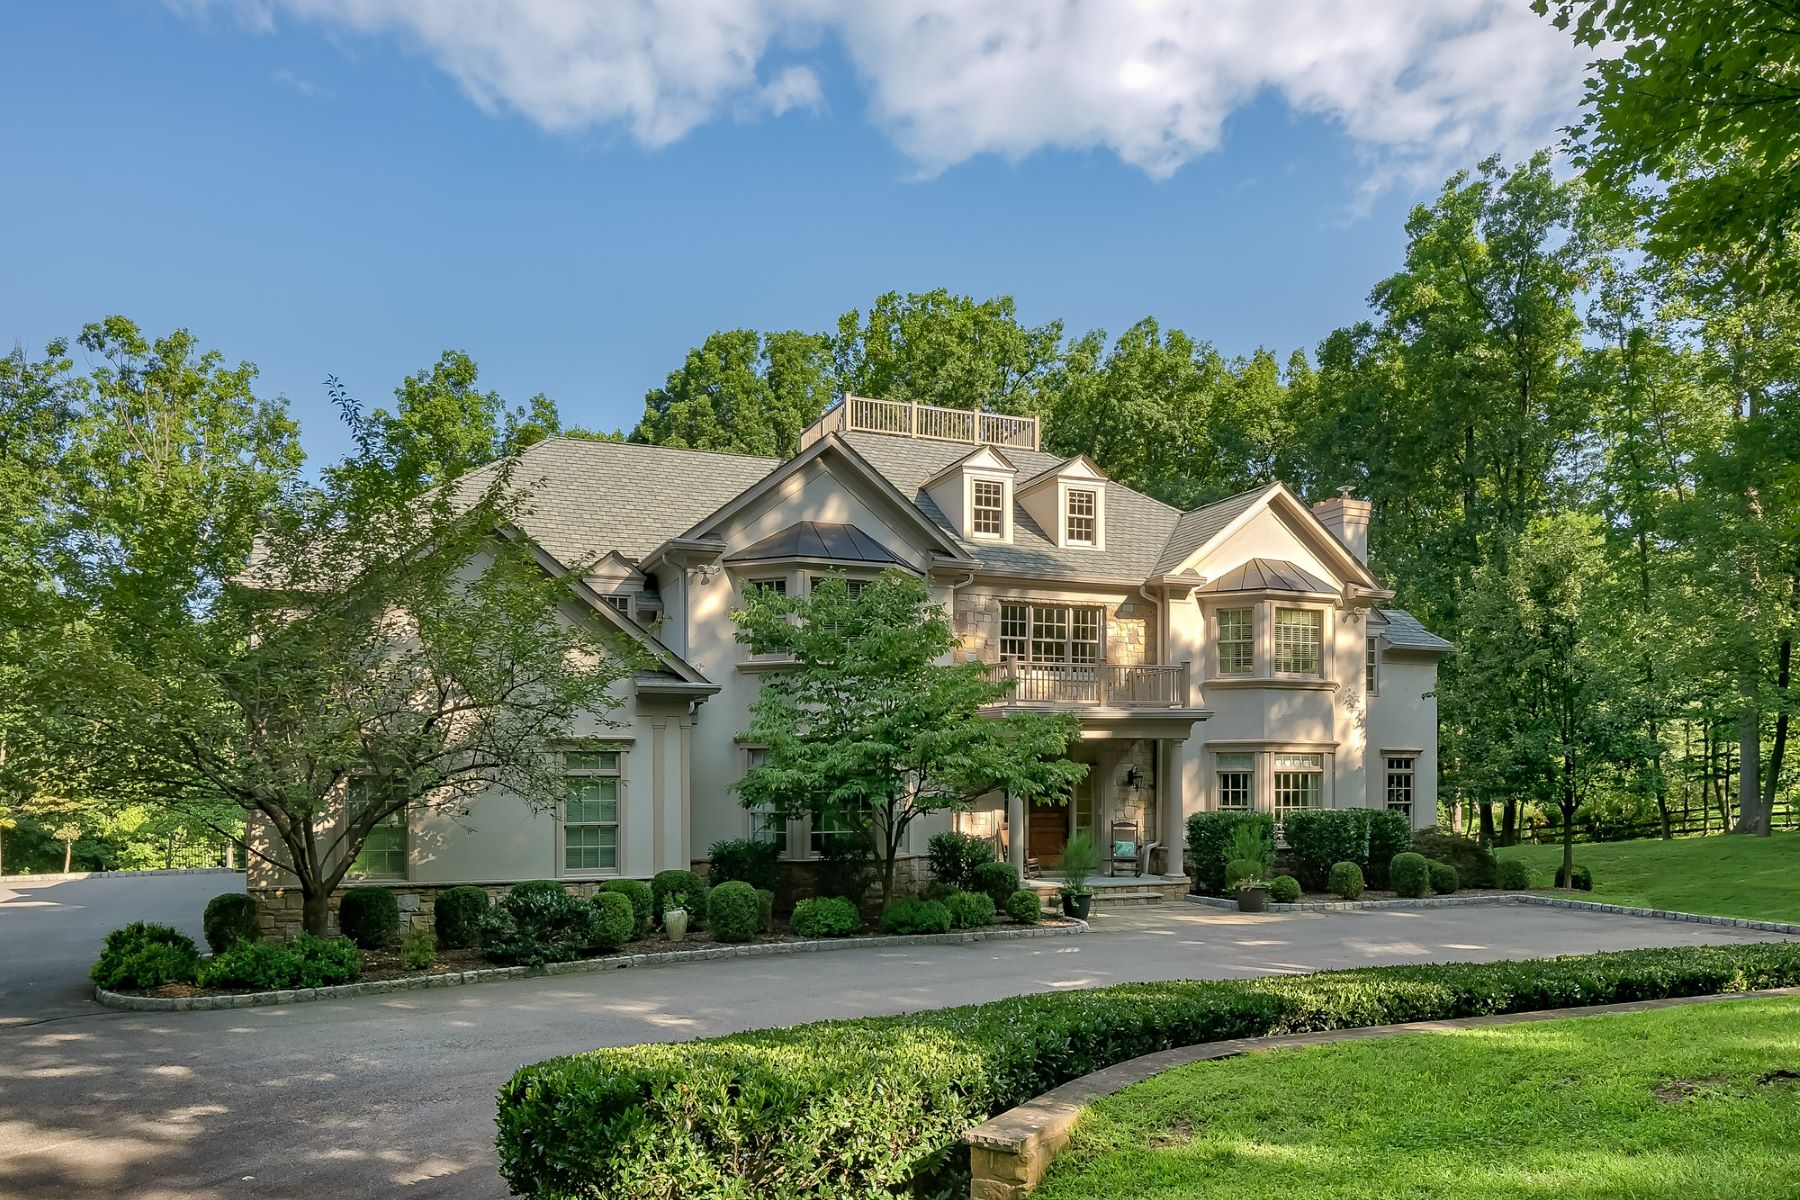 Single Family Homes for Sale at Exceptional Custom Colonial 151 Post Kennel Road Bernardsville, New Jersey 07924 United States